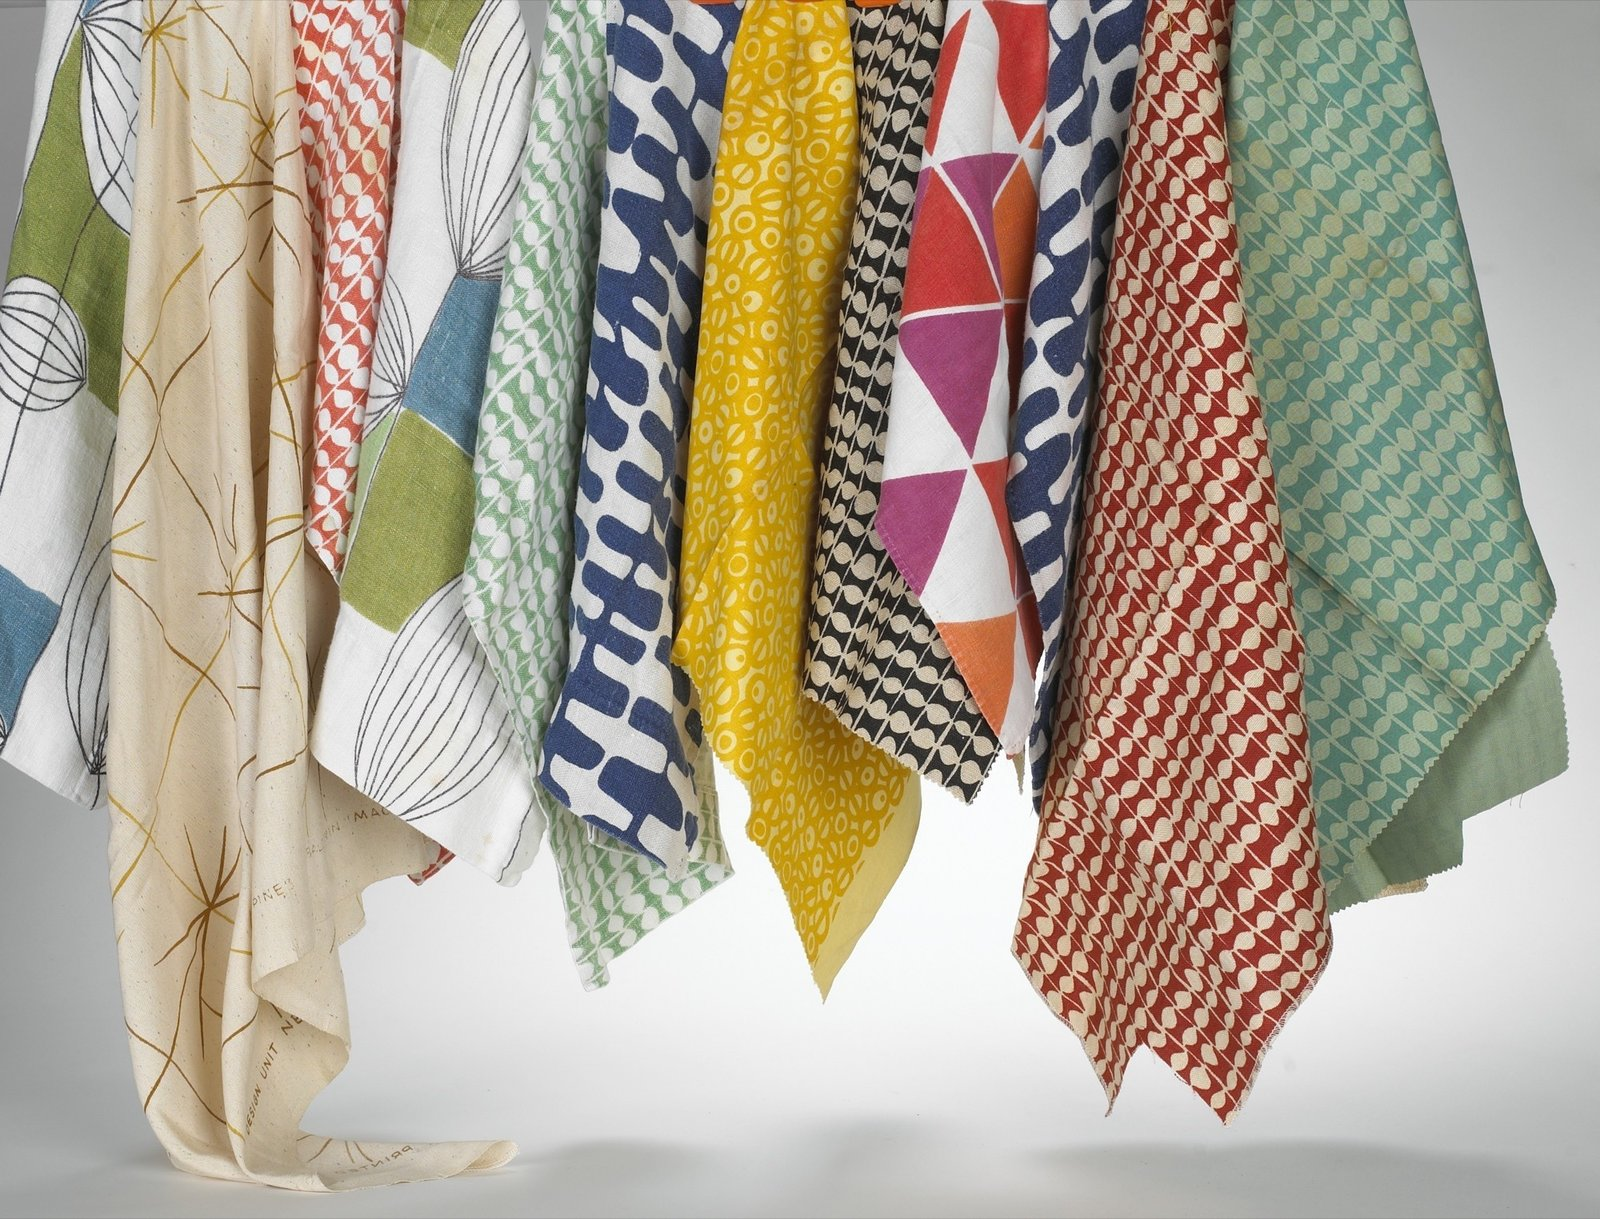 Fabrics designed by Ben Balwin  Photo 13 of 21 in How American Modernism Came to the Mountains